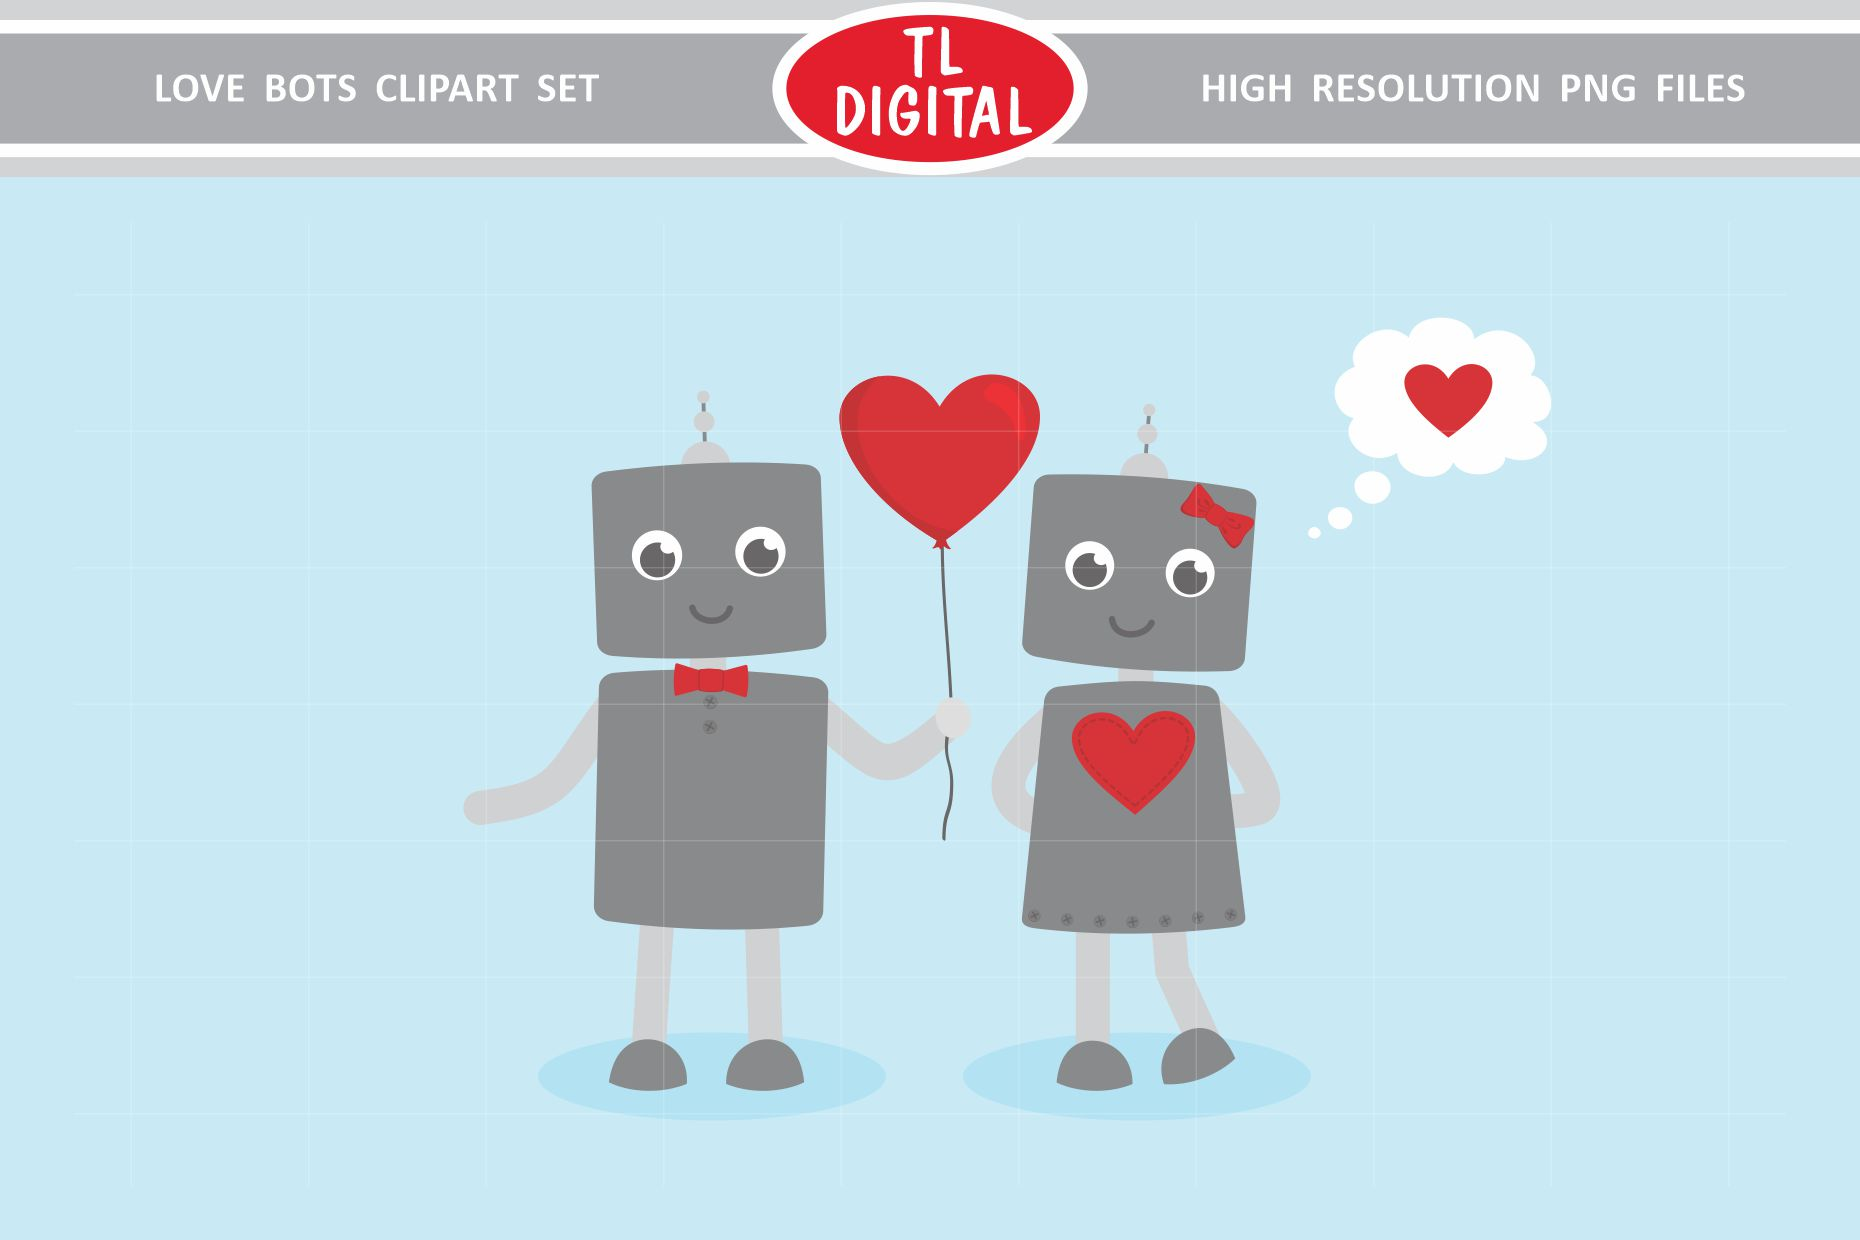 Love Robots Clipart Set - 13 Valentines PNG Graphics example image 3